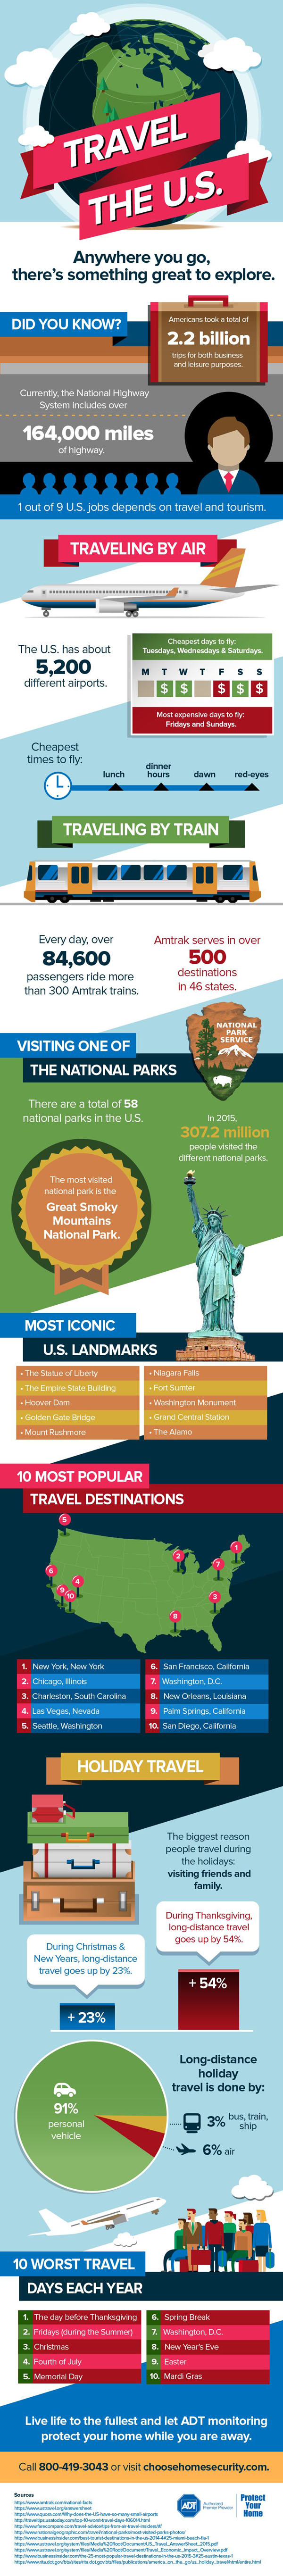 Travel the U.S. [Infographic]